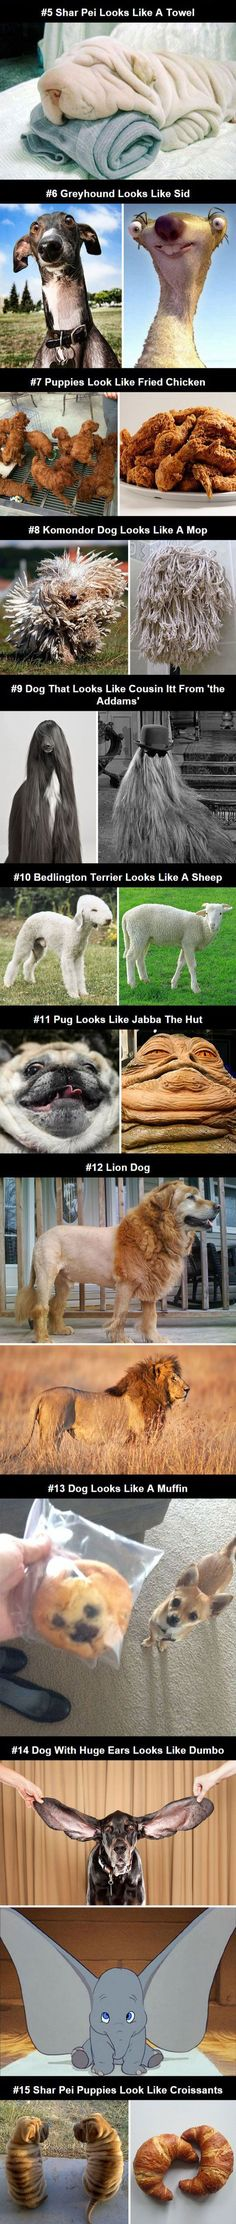 Haha!!!: Funny Animals, Awesome Animal, Look Alike, Same Animal, Puppy Meme, Cooking Grease, Funny Dog Meme, Fried Chicken